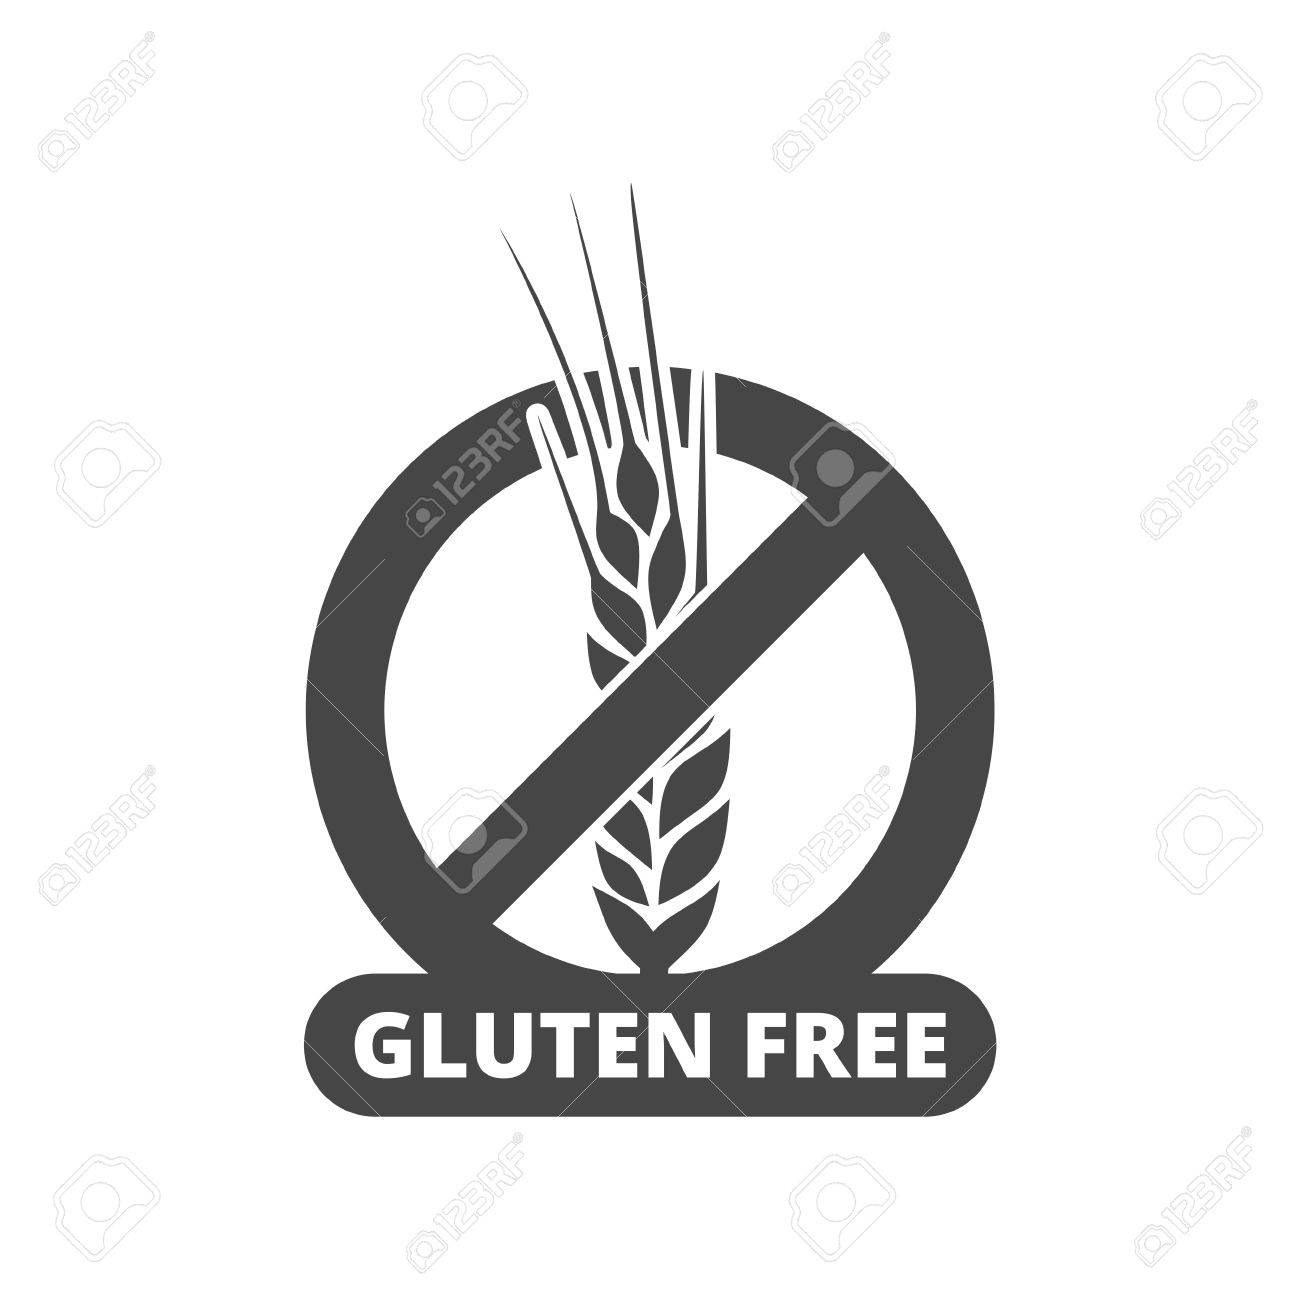 Gluten Free Icon Royalty Free Cliparts, Vectors, And Stock